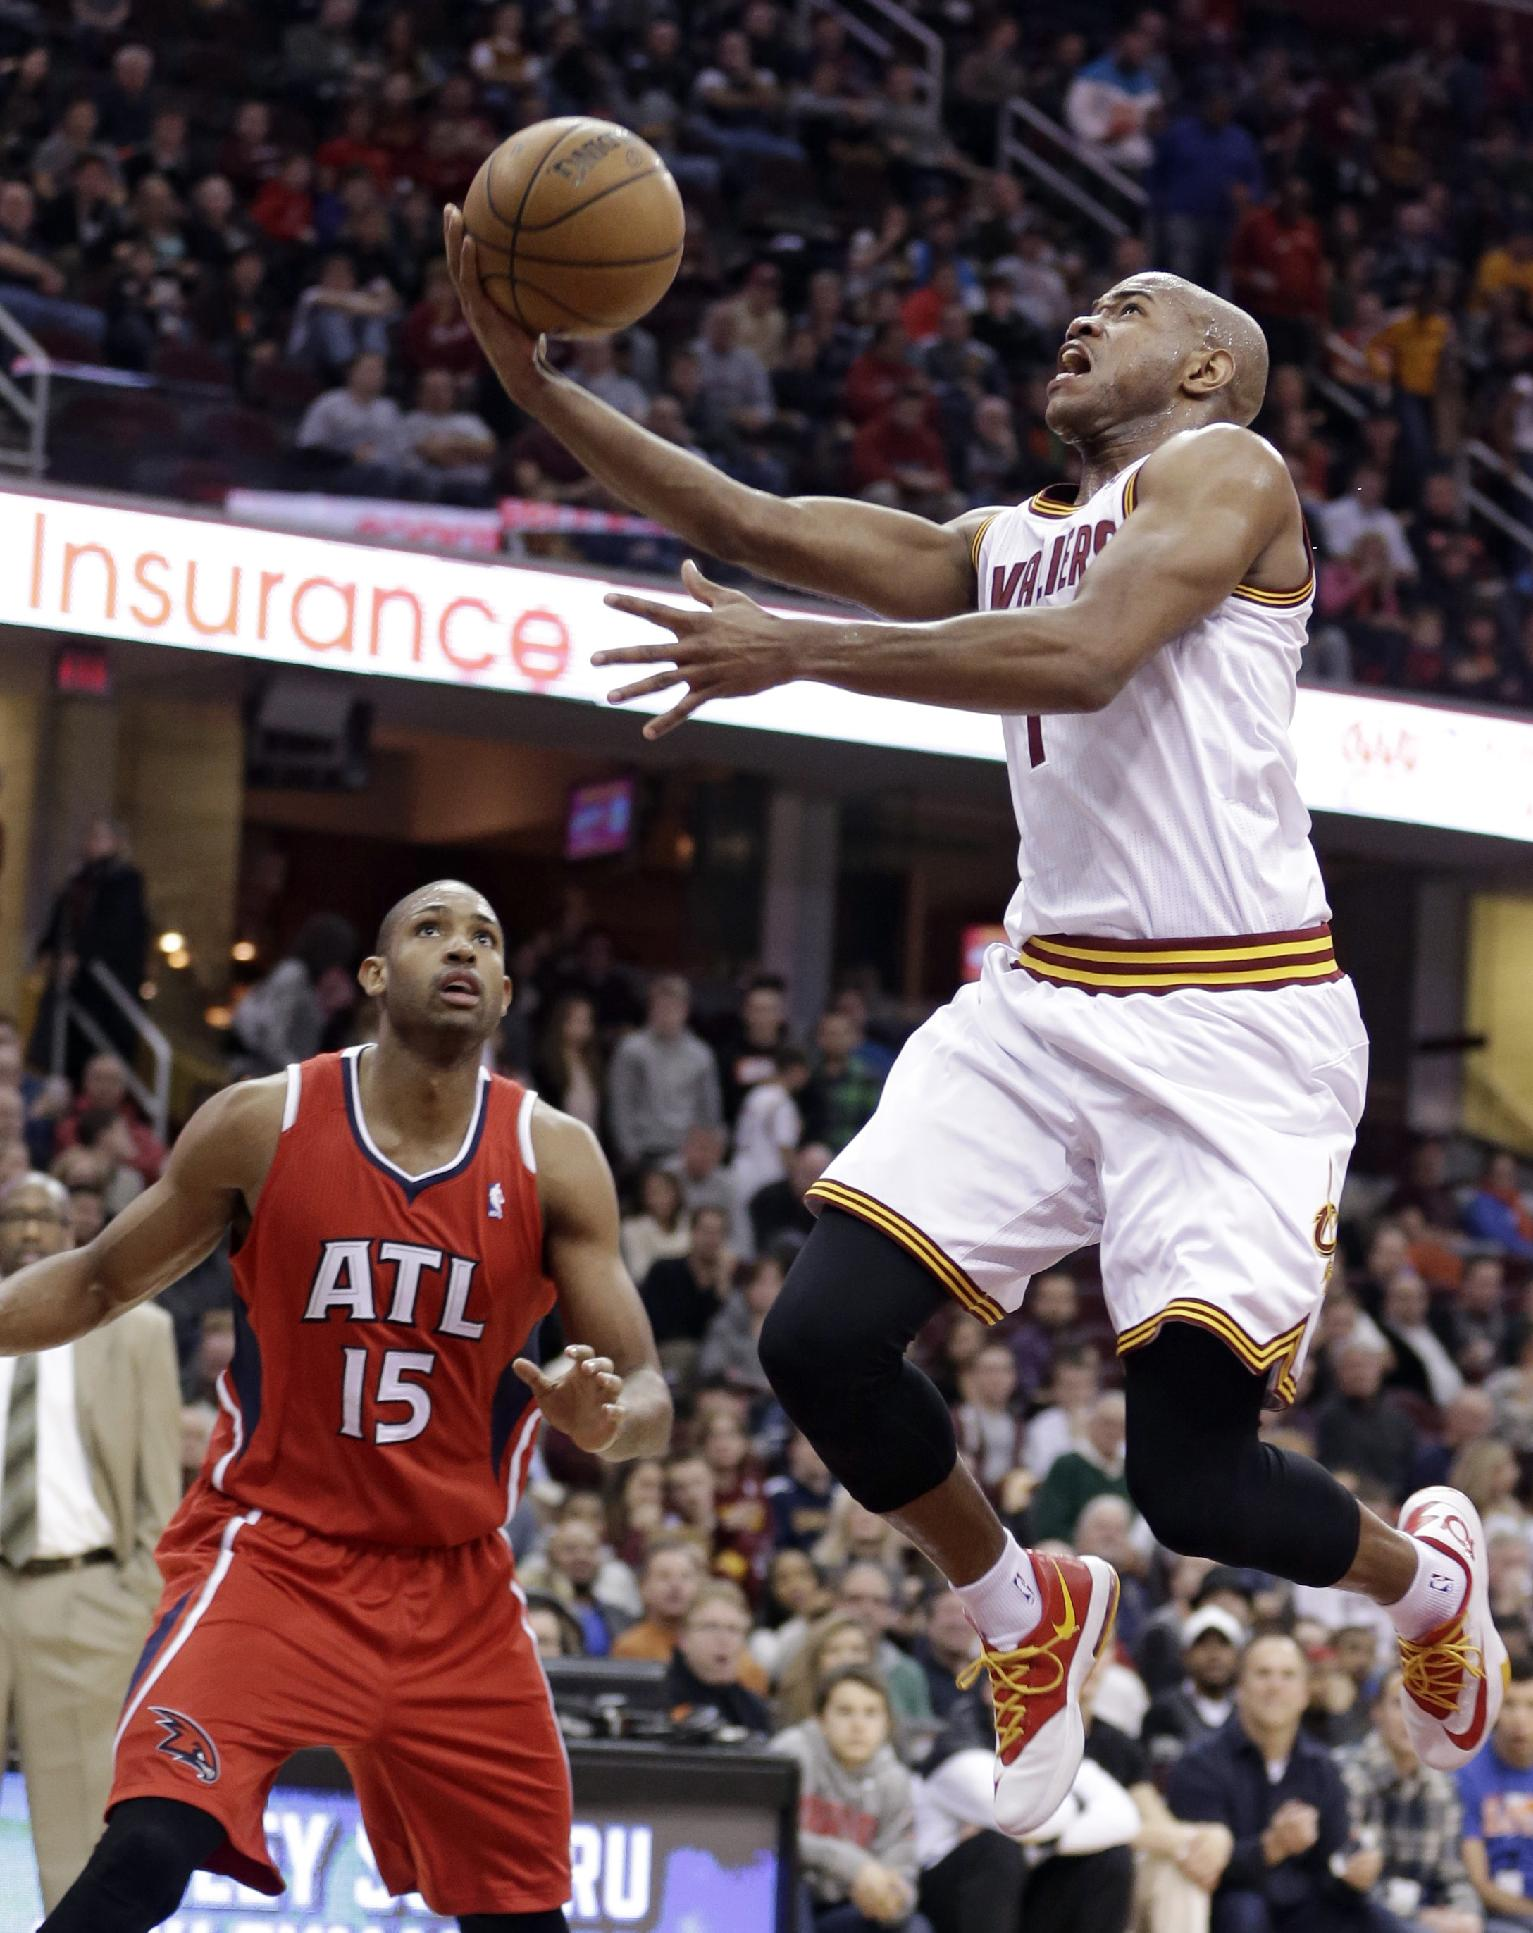 Cleveland Cavaliers' Jarrett Jack (1) jumps to the basket against Atlanta Hawks' Al Horford (15) during the second quarter of an NBA basketball game Thursday, Dec. 26, 2013, in Cleveland